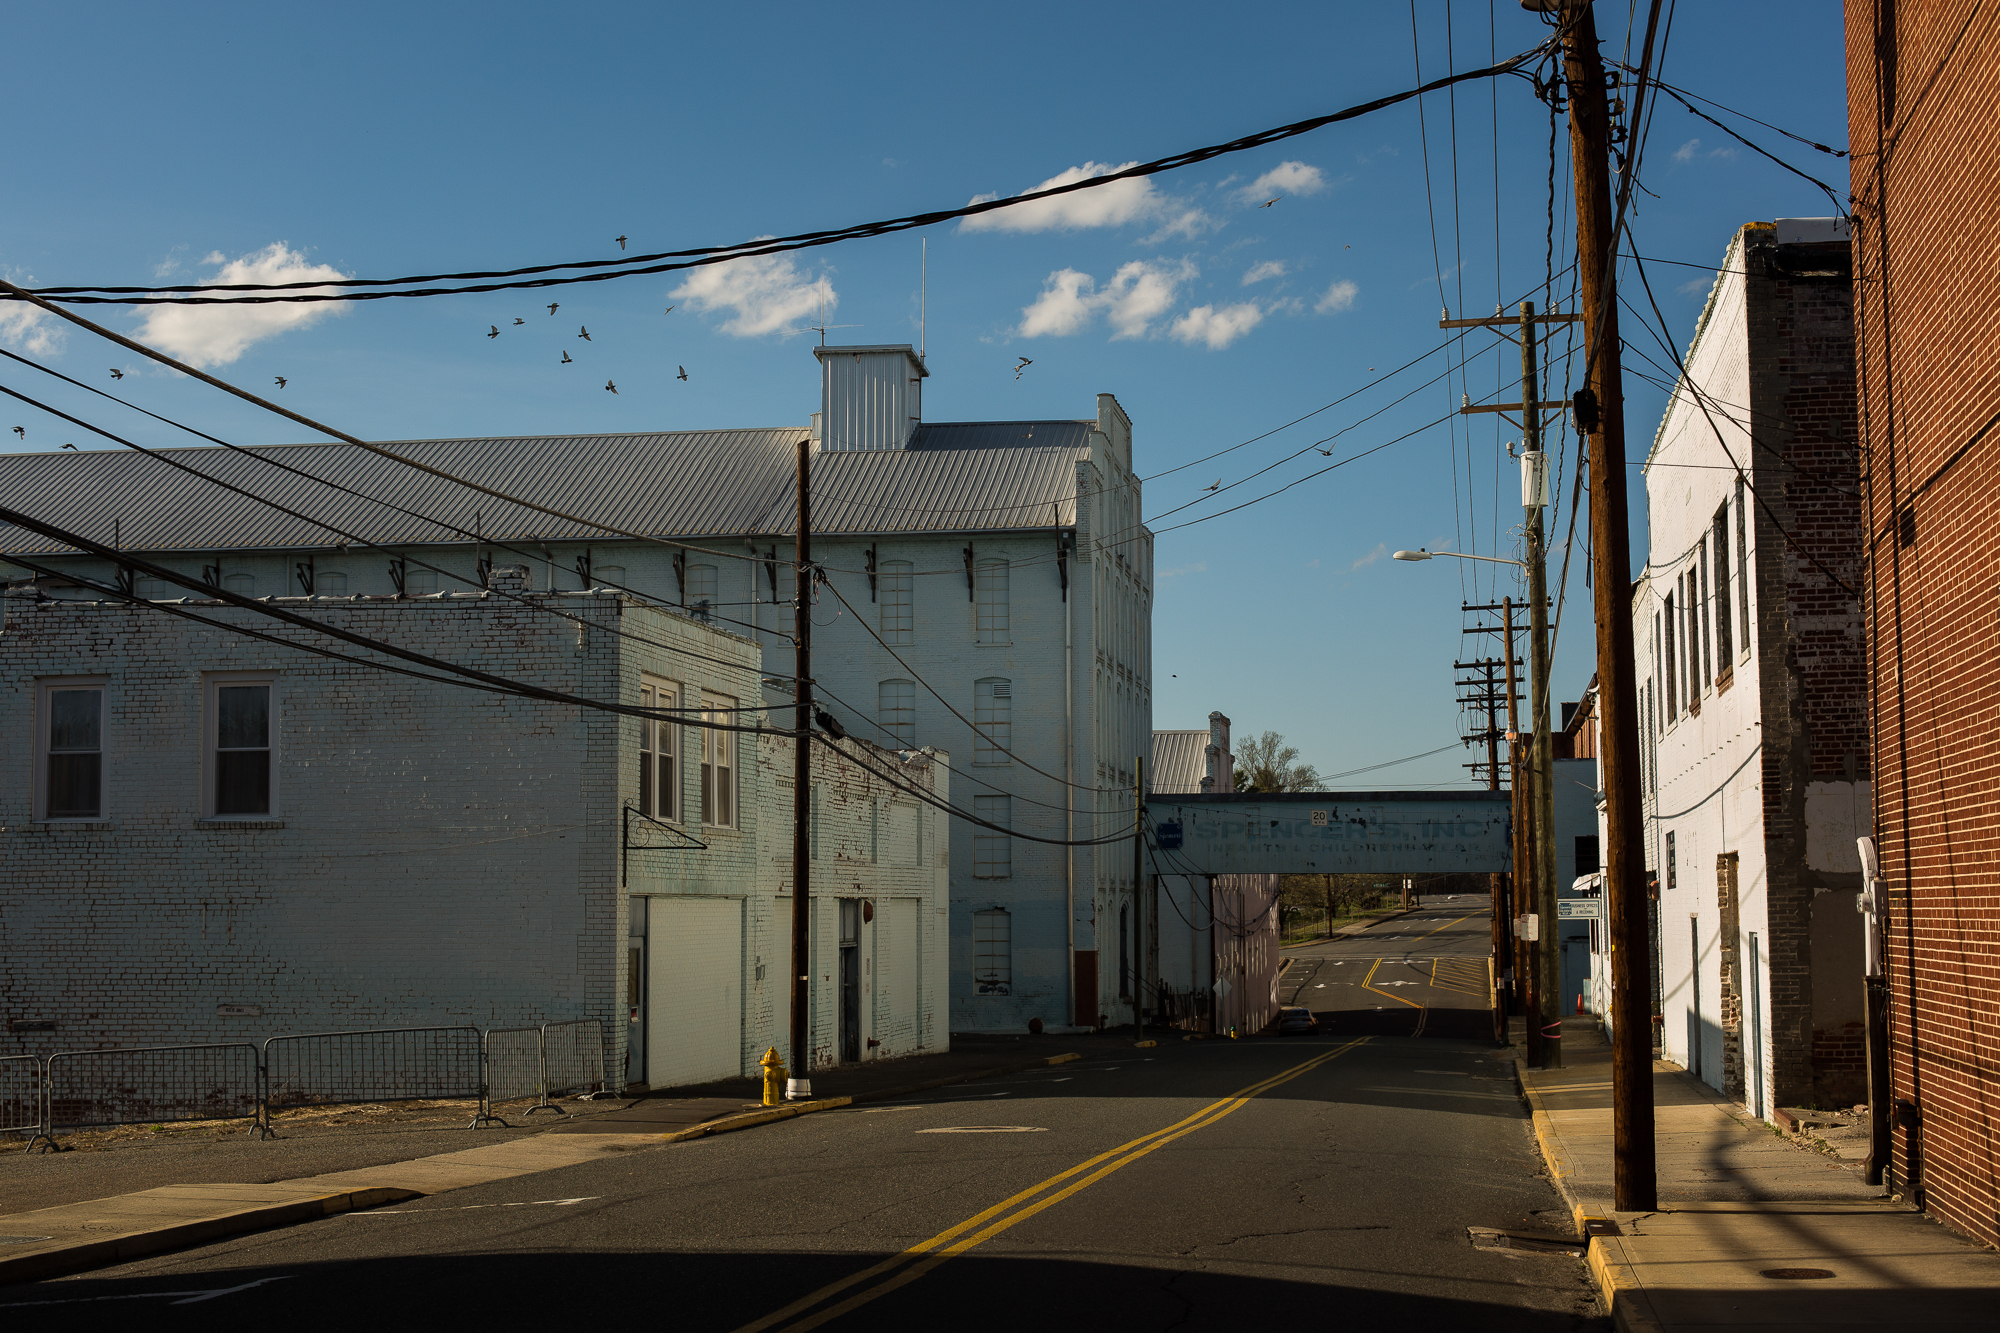 The abandoned Spencer, Inc factory once made children's clothing in Mount Airy, N.C.